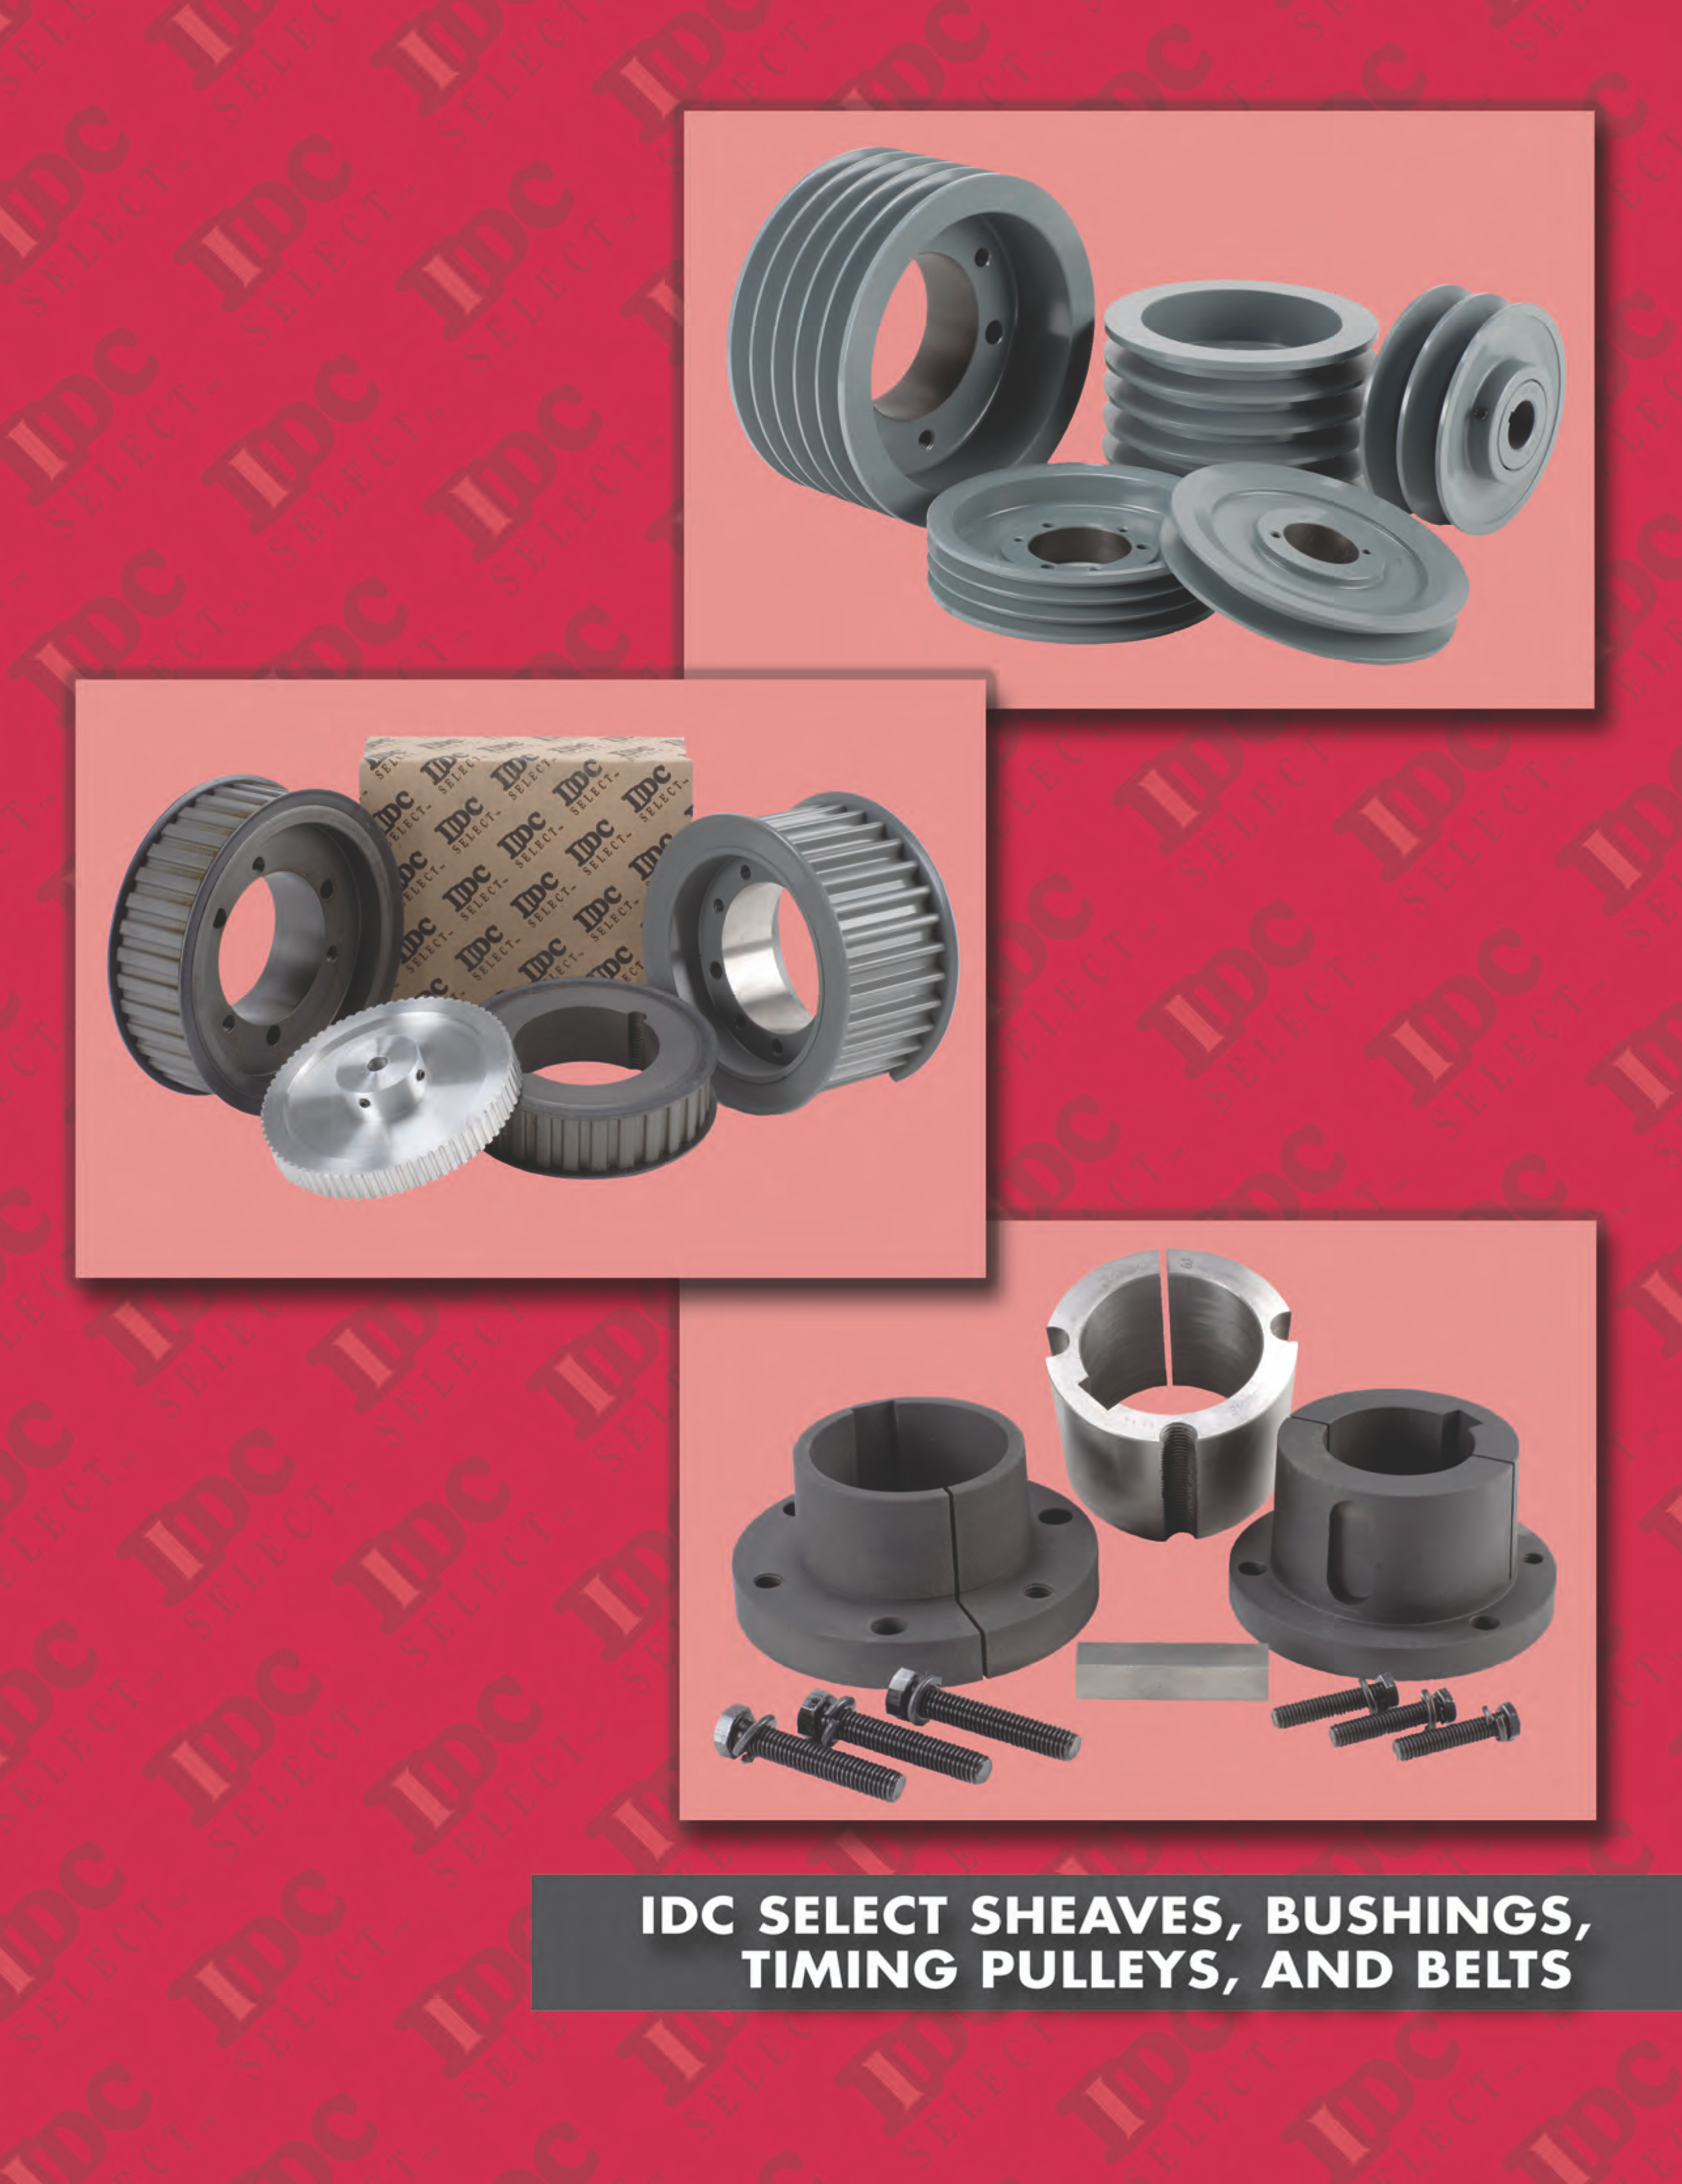 IDC Select Sheave, Bushings, Pulleys, and Belts